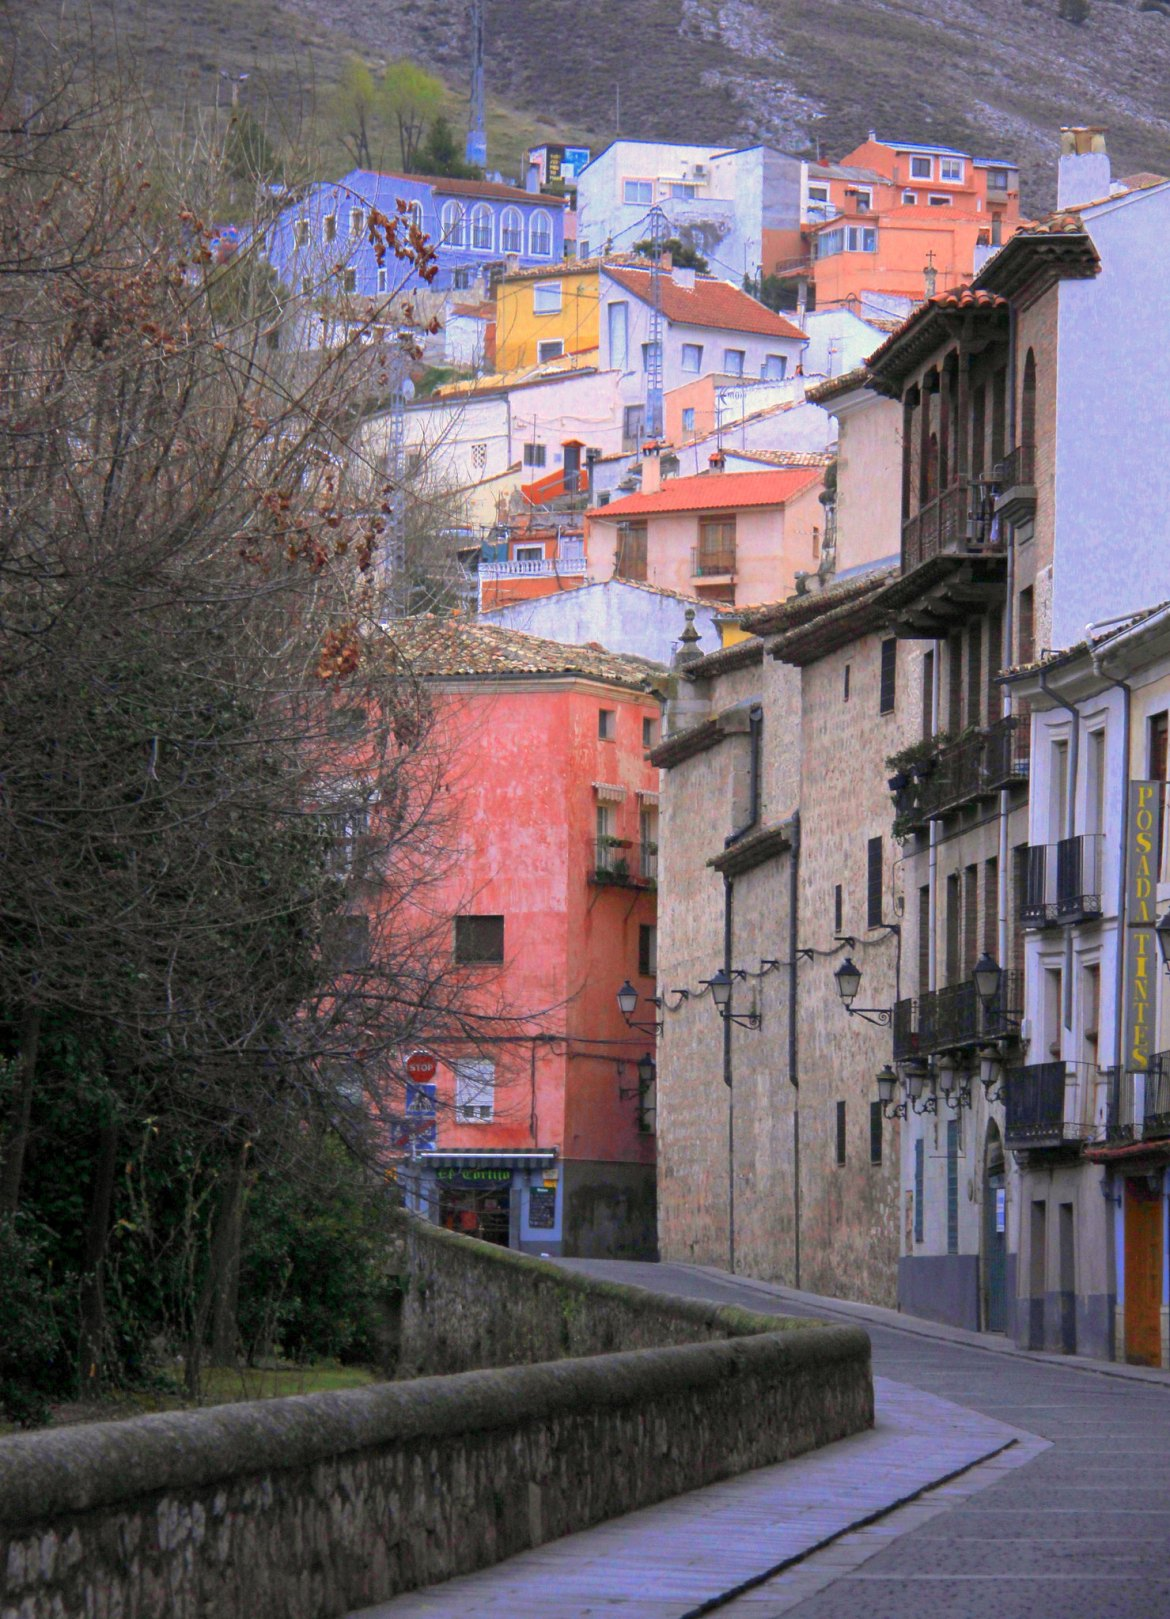 Cuenca's Hanging Houses are now converted to museums or restaurants